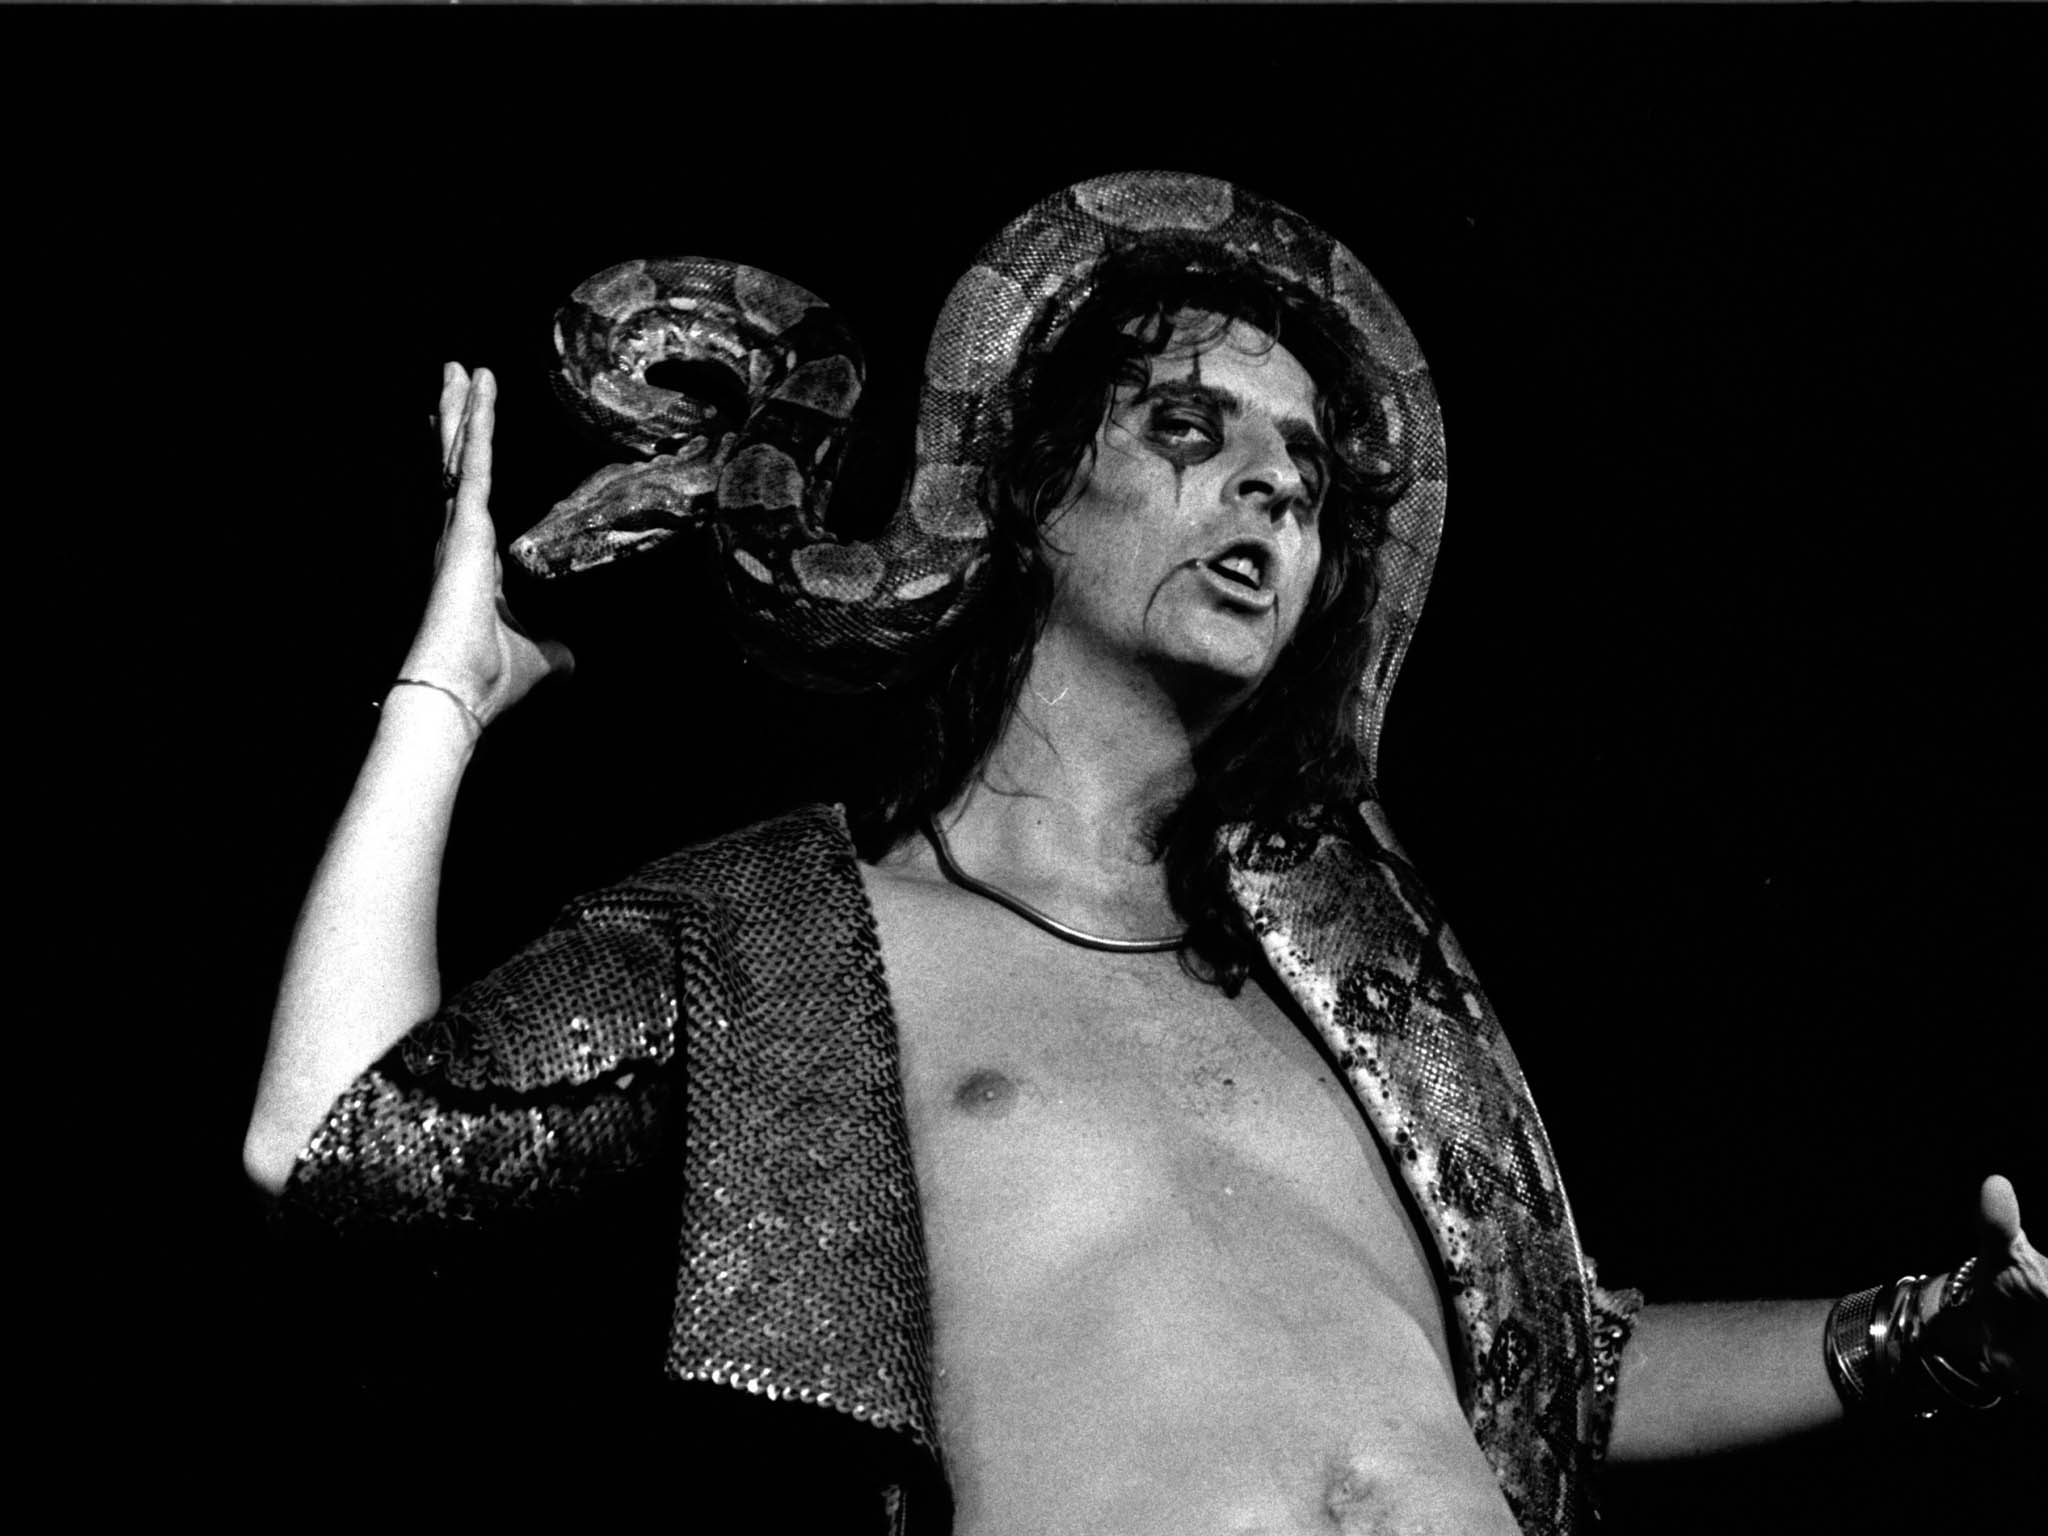 Alice Cooper shows his bizarre side with his 11-foot boa-constrictor. Photo of Alice Cooper in concert at Varsity Stadium.